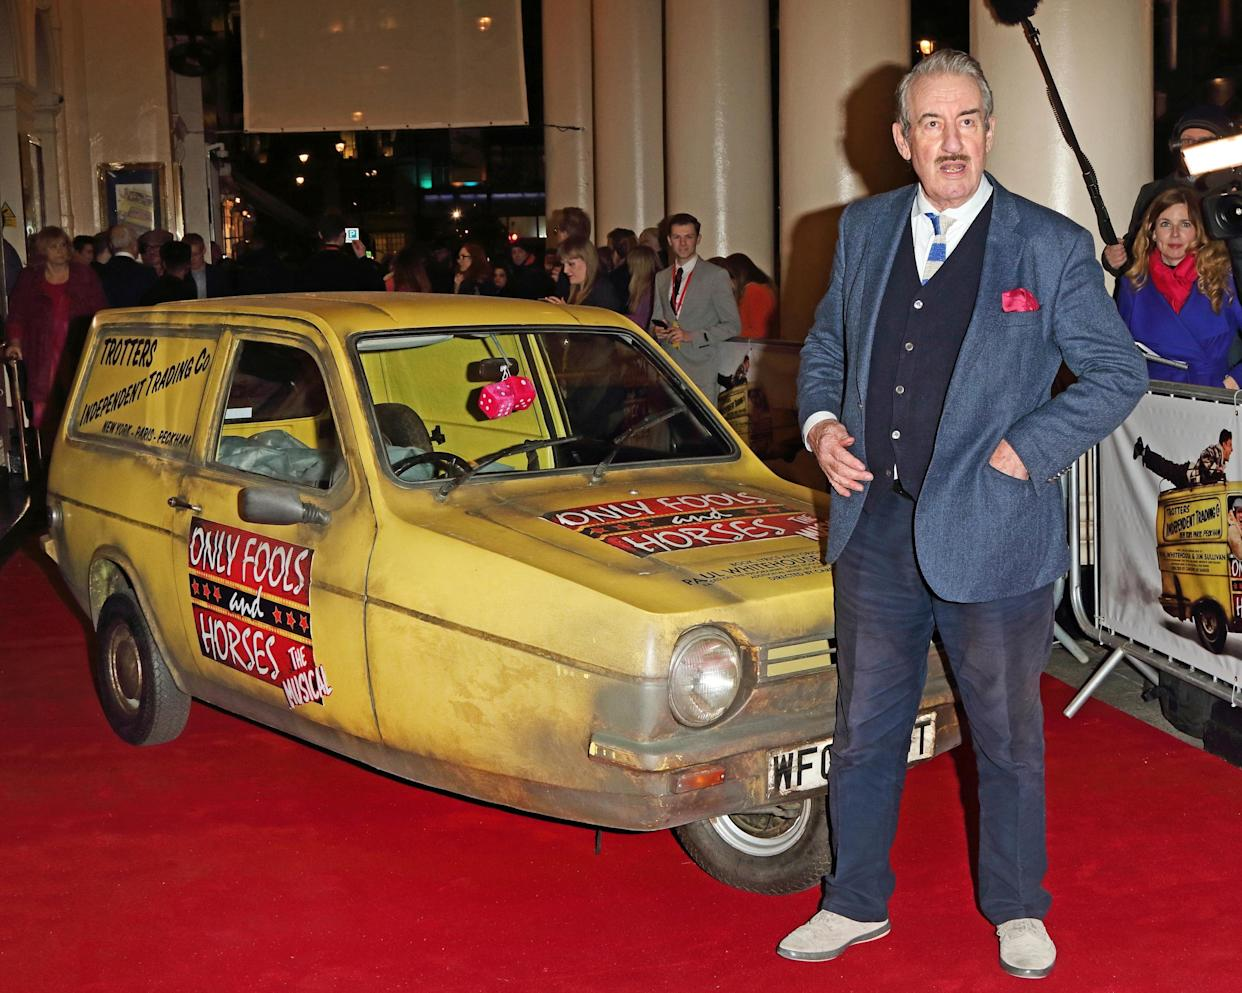 LONDON, -, UNITED KINGDOM - 2019/02/19: John Challis seen during the Only Fools and Horses Press night at the Theatre Royal Haymarket in London. (Photo by Keith Mayhew/SOPA Images/LightRocket via Getty Images)